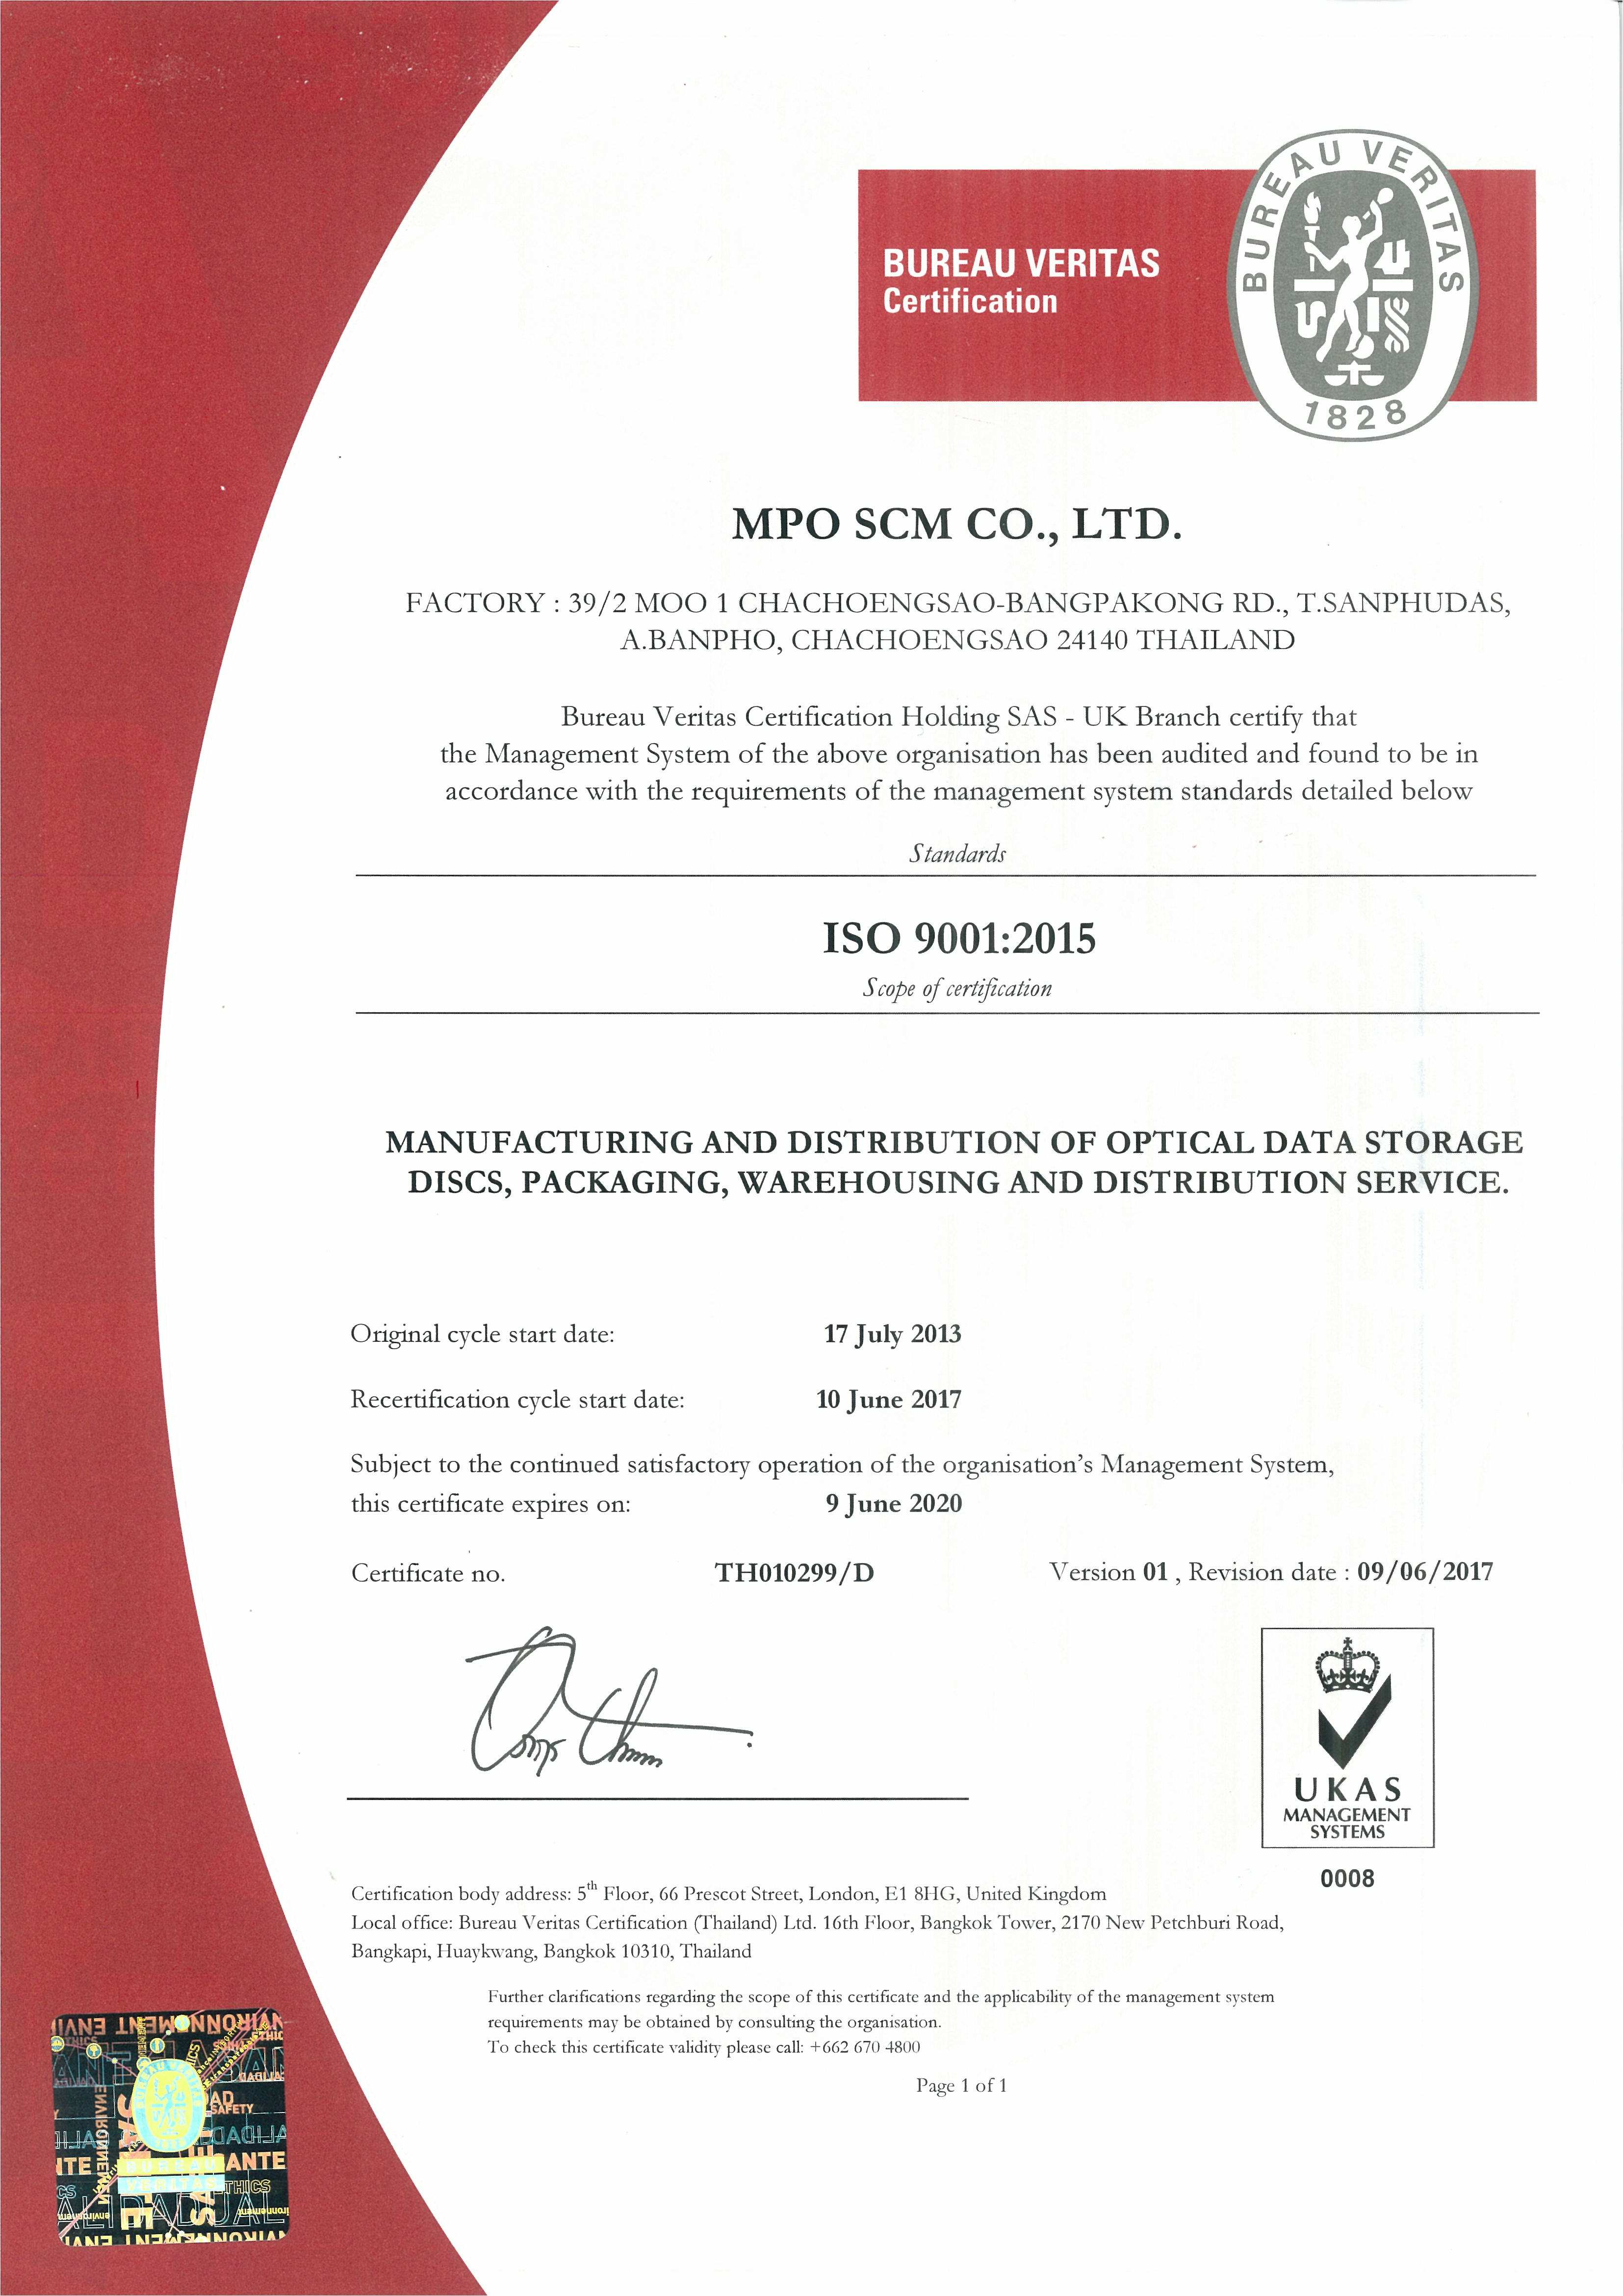 ISO 9001:2015 Certificate for MPO_SCM Factory